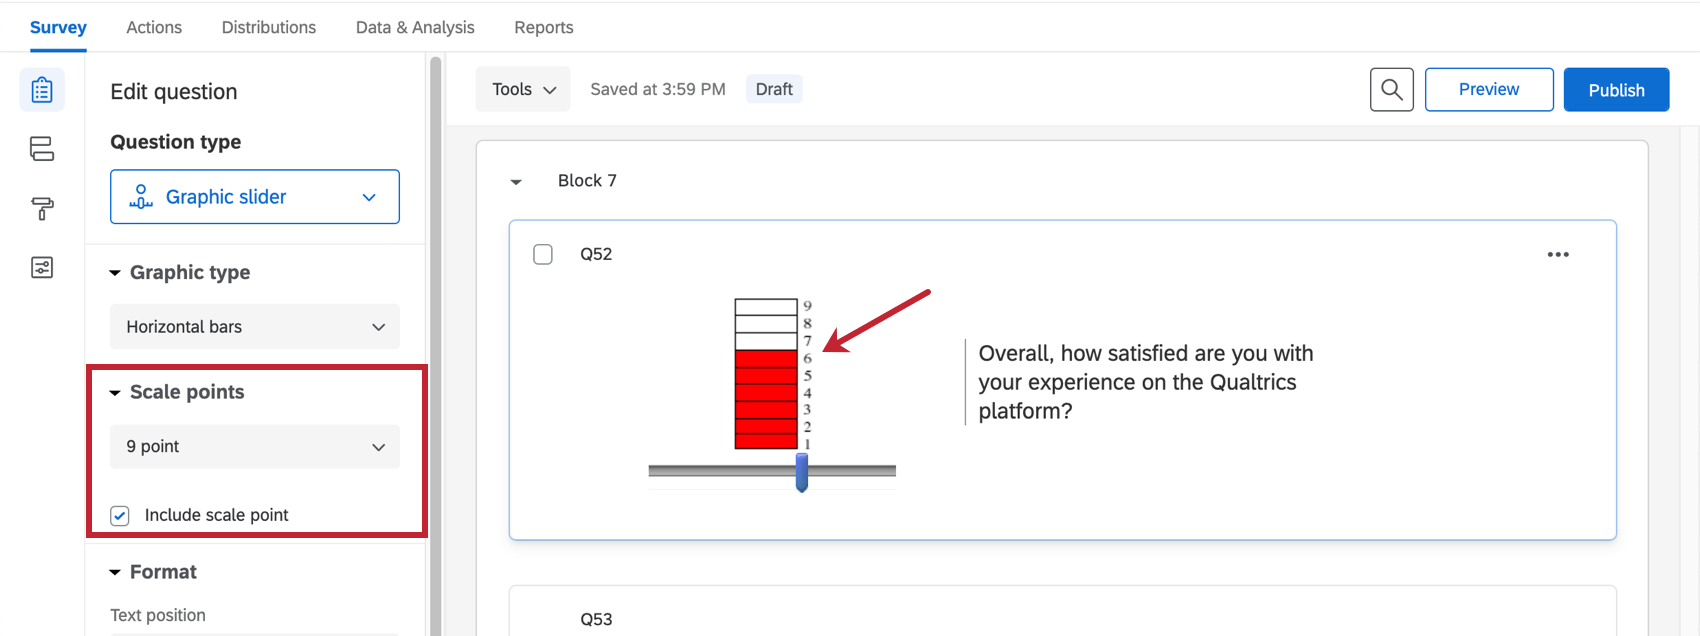 Bar slider set to a scale of 9, filled in red to the sixth block